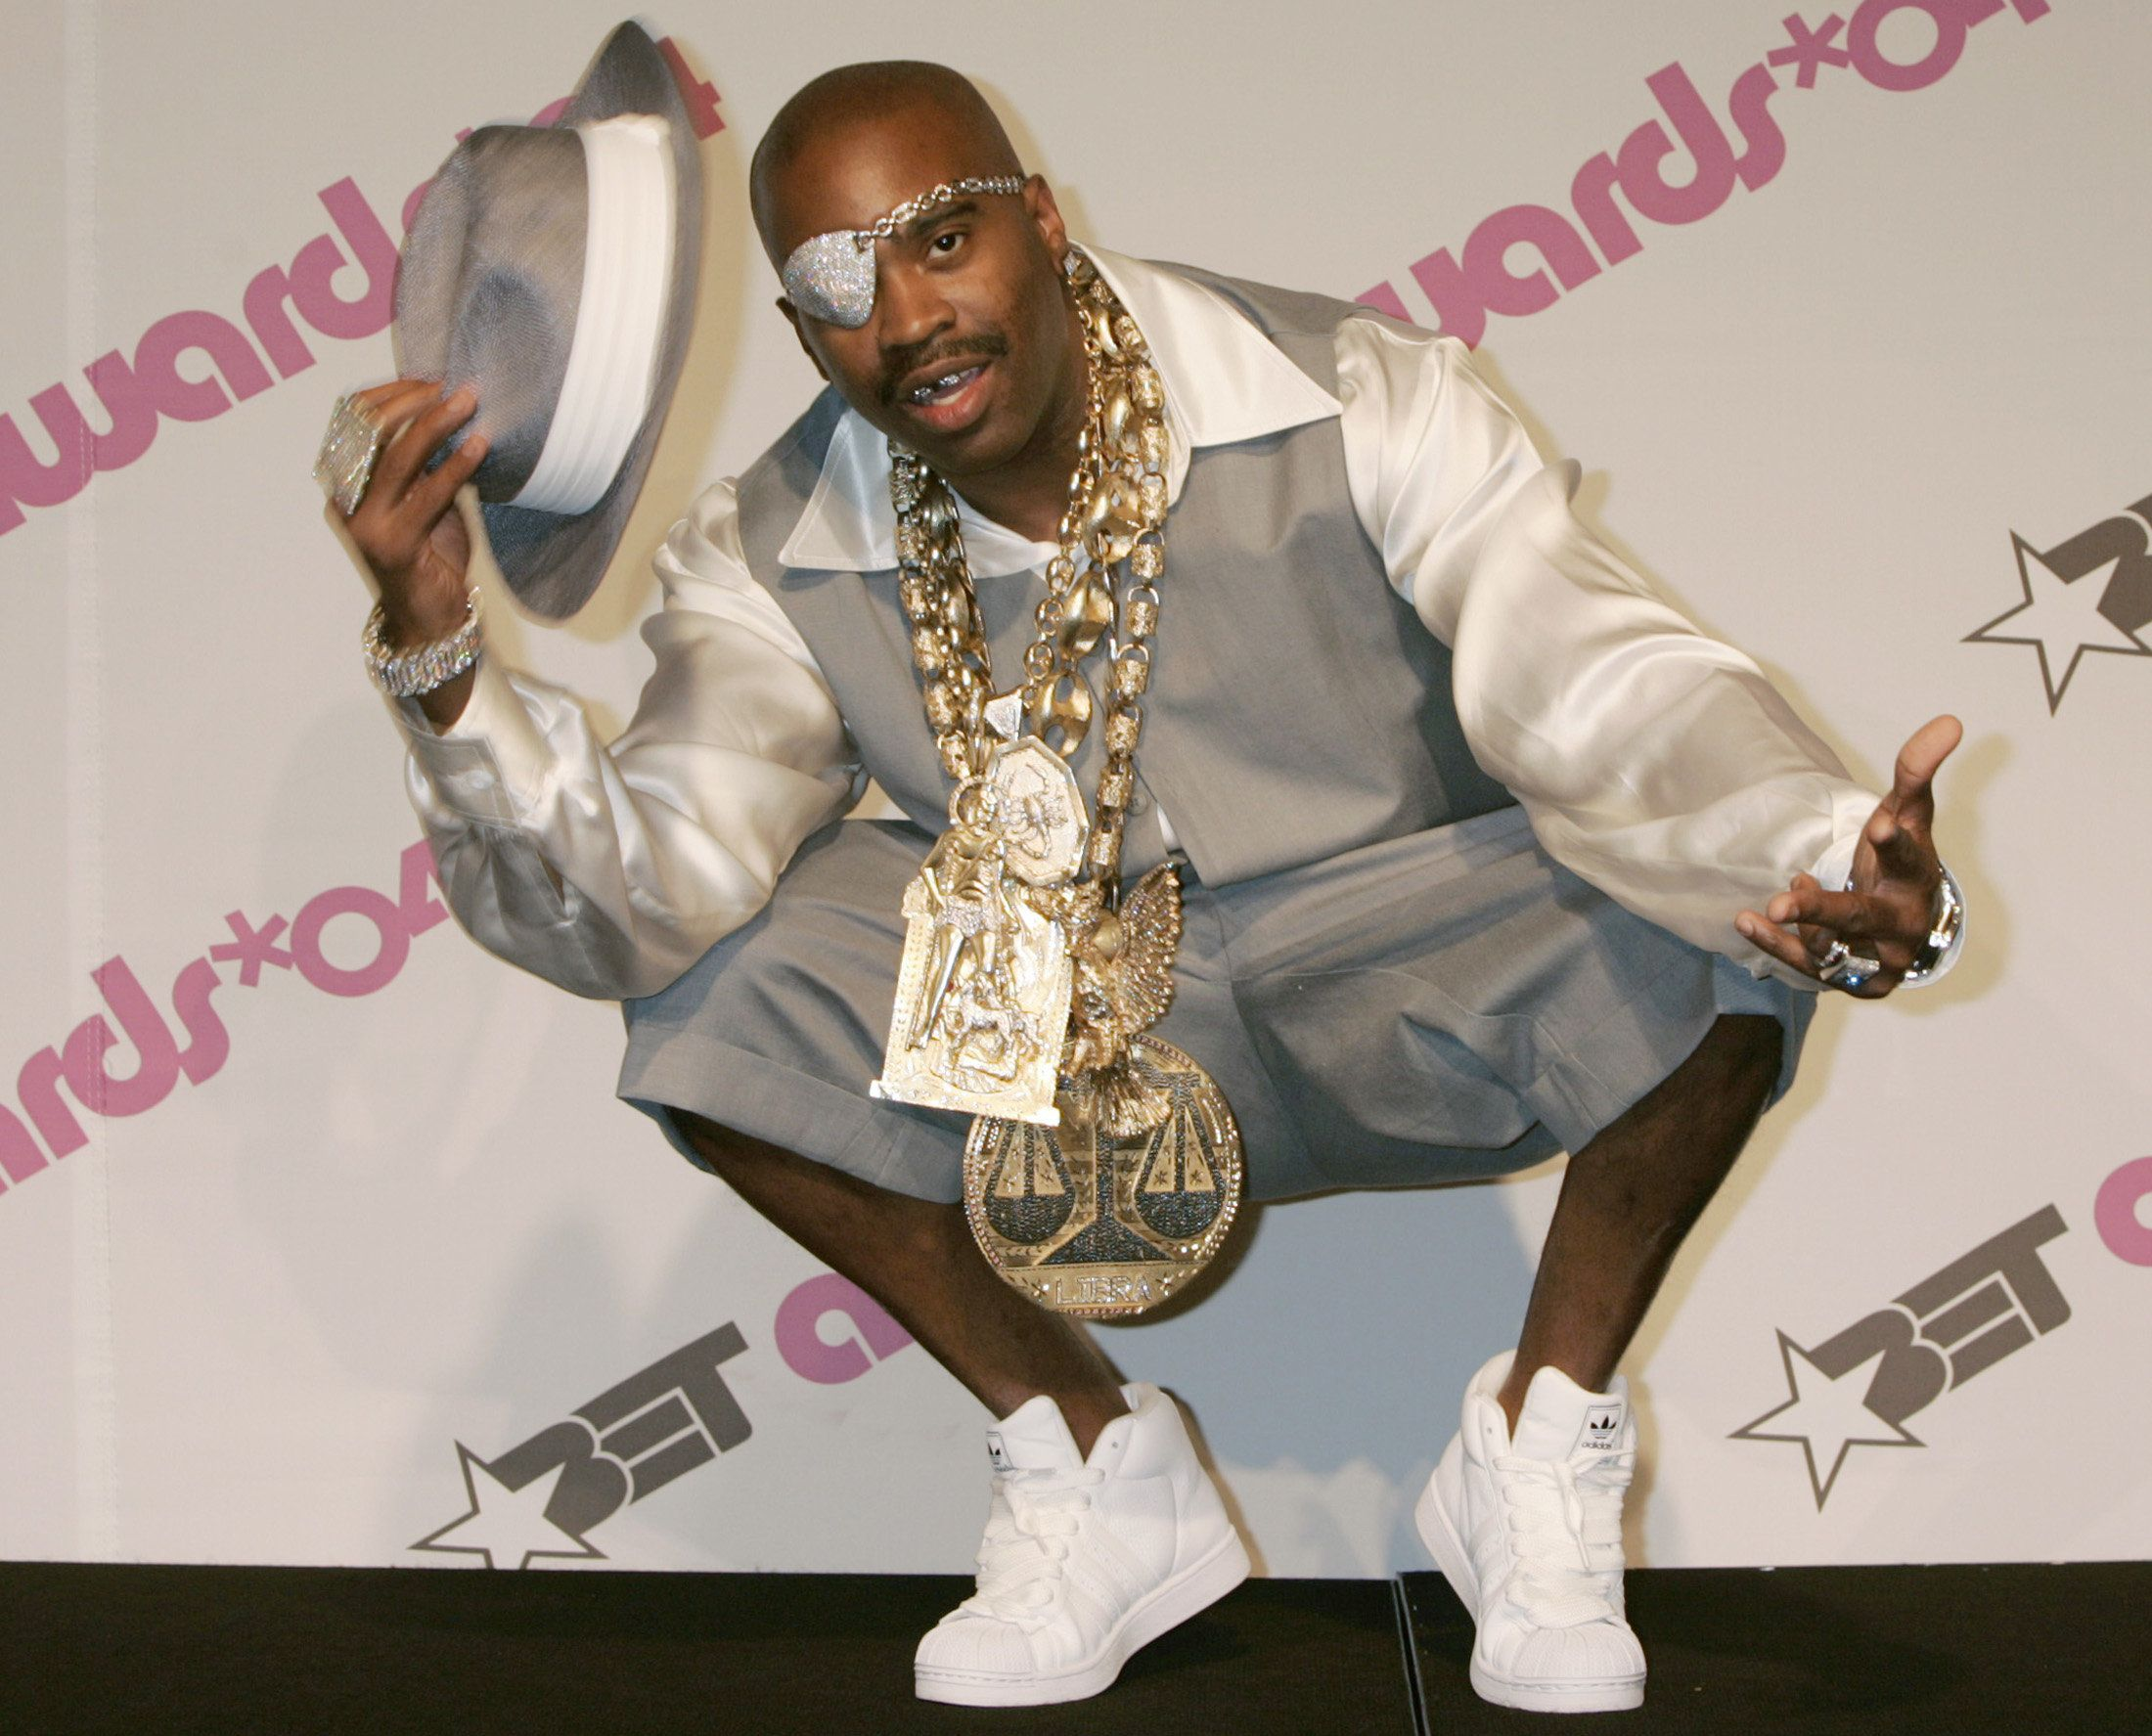 Rapper Slick Rick poses backstage for photographers at the Black Entertainment Television award show in Hollywood June 29, 2004. REUTERS/Fred Prouser  FSP